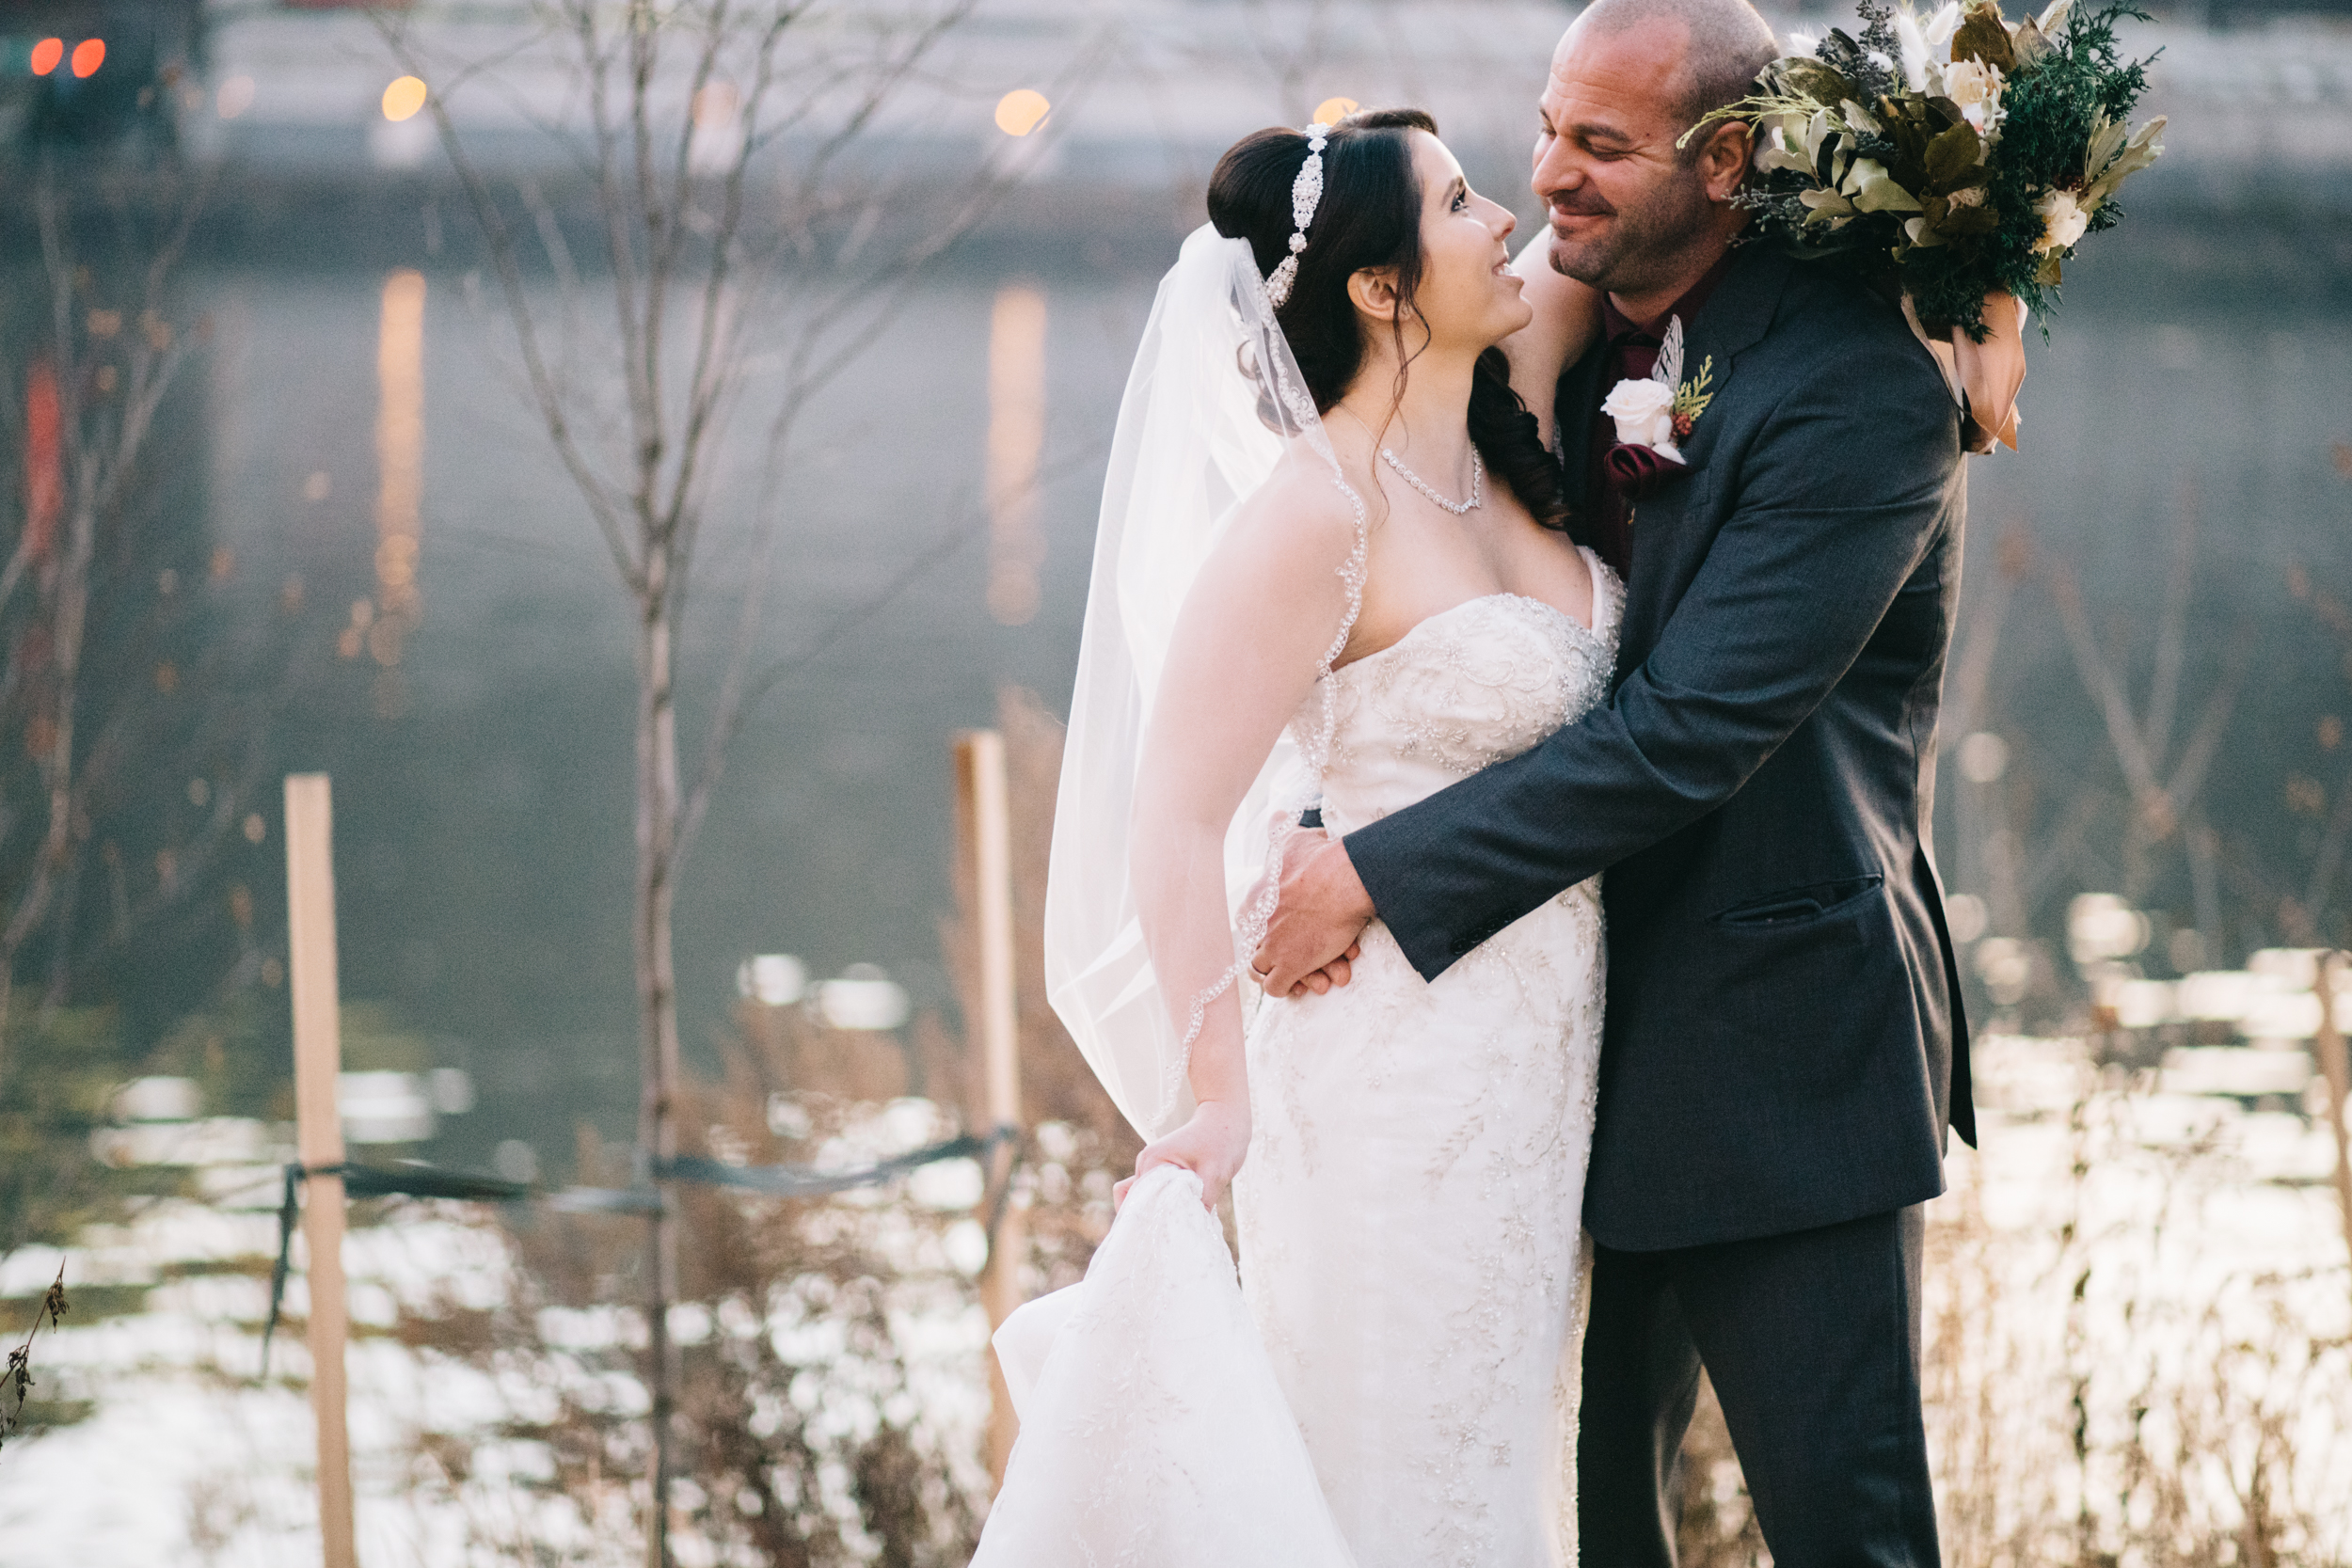 Sara_Brandon_Winter_Mt_Washington_Wedding (22 of 30).jpg